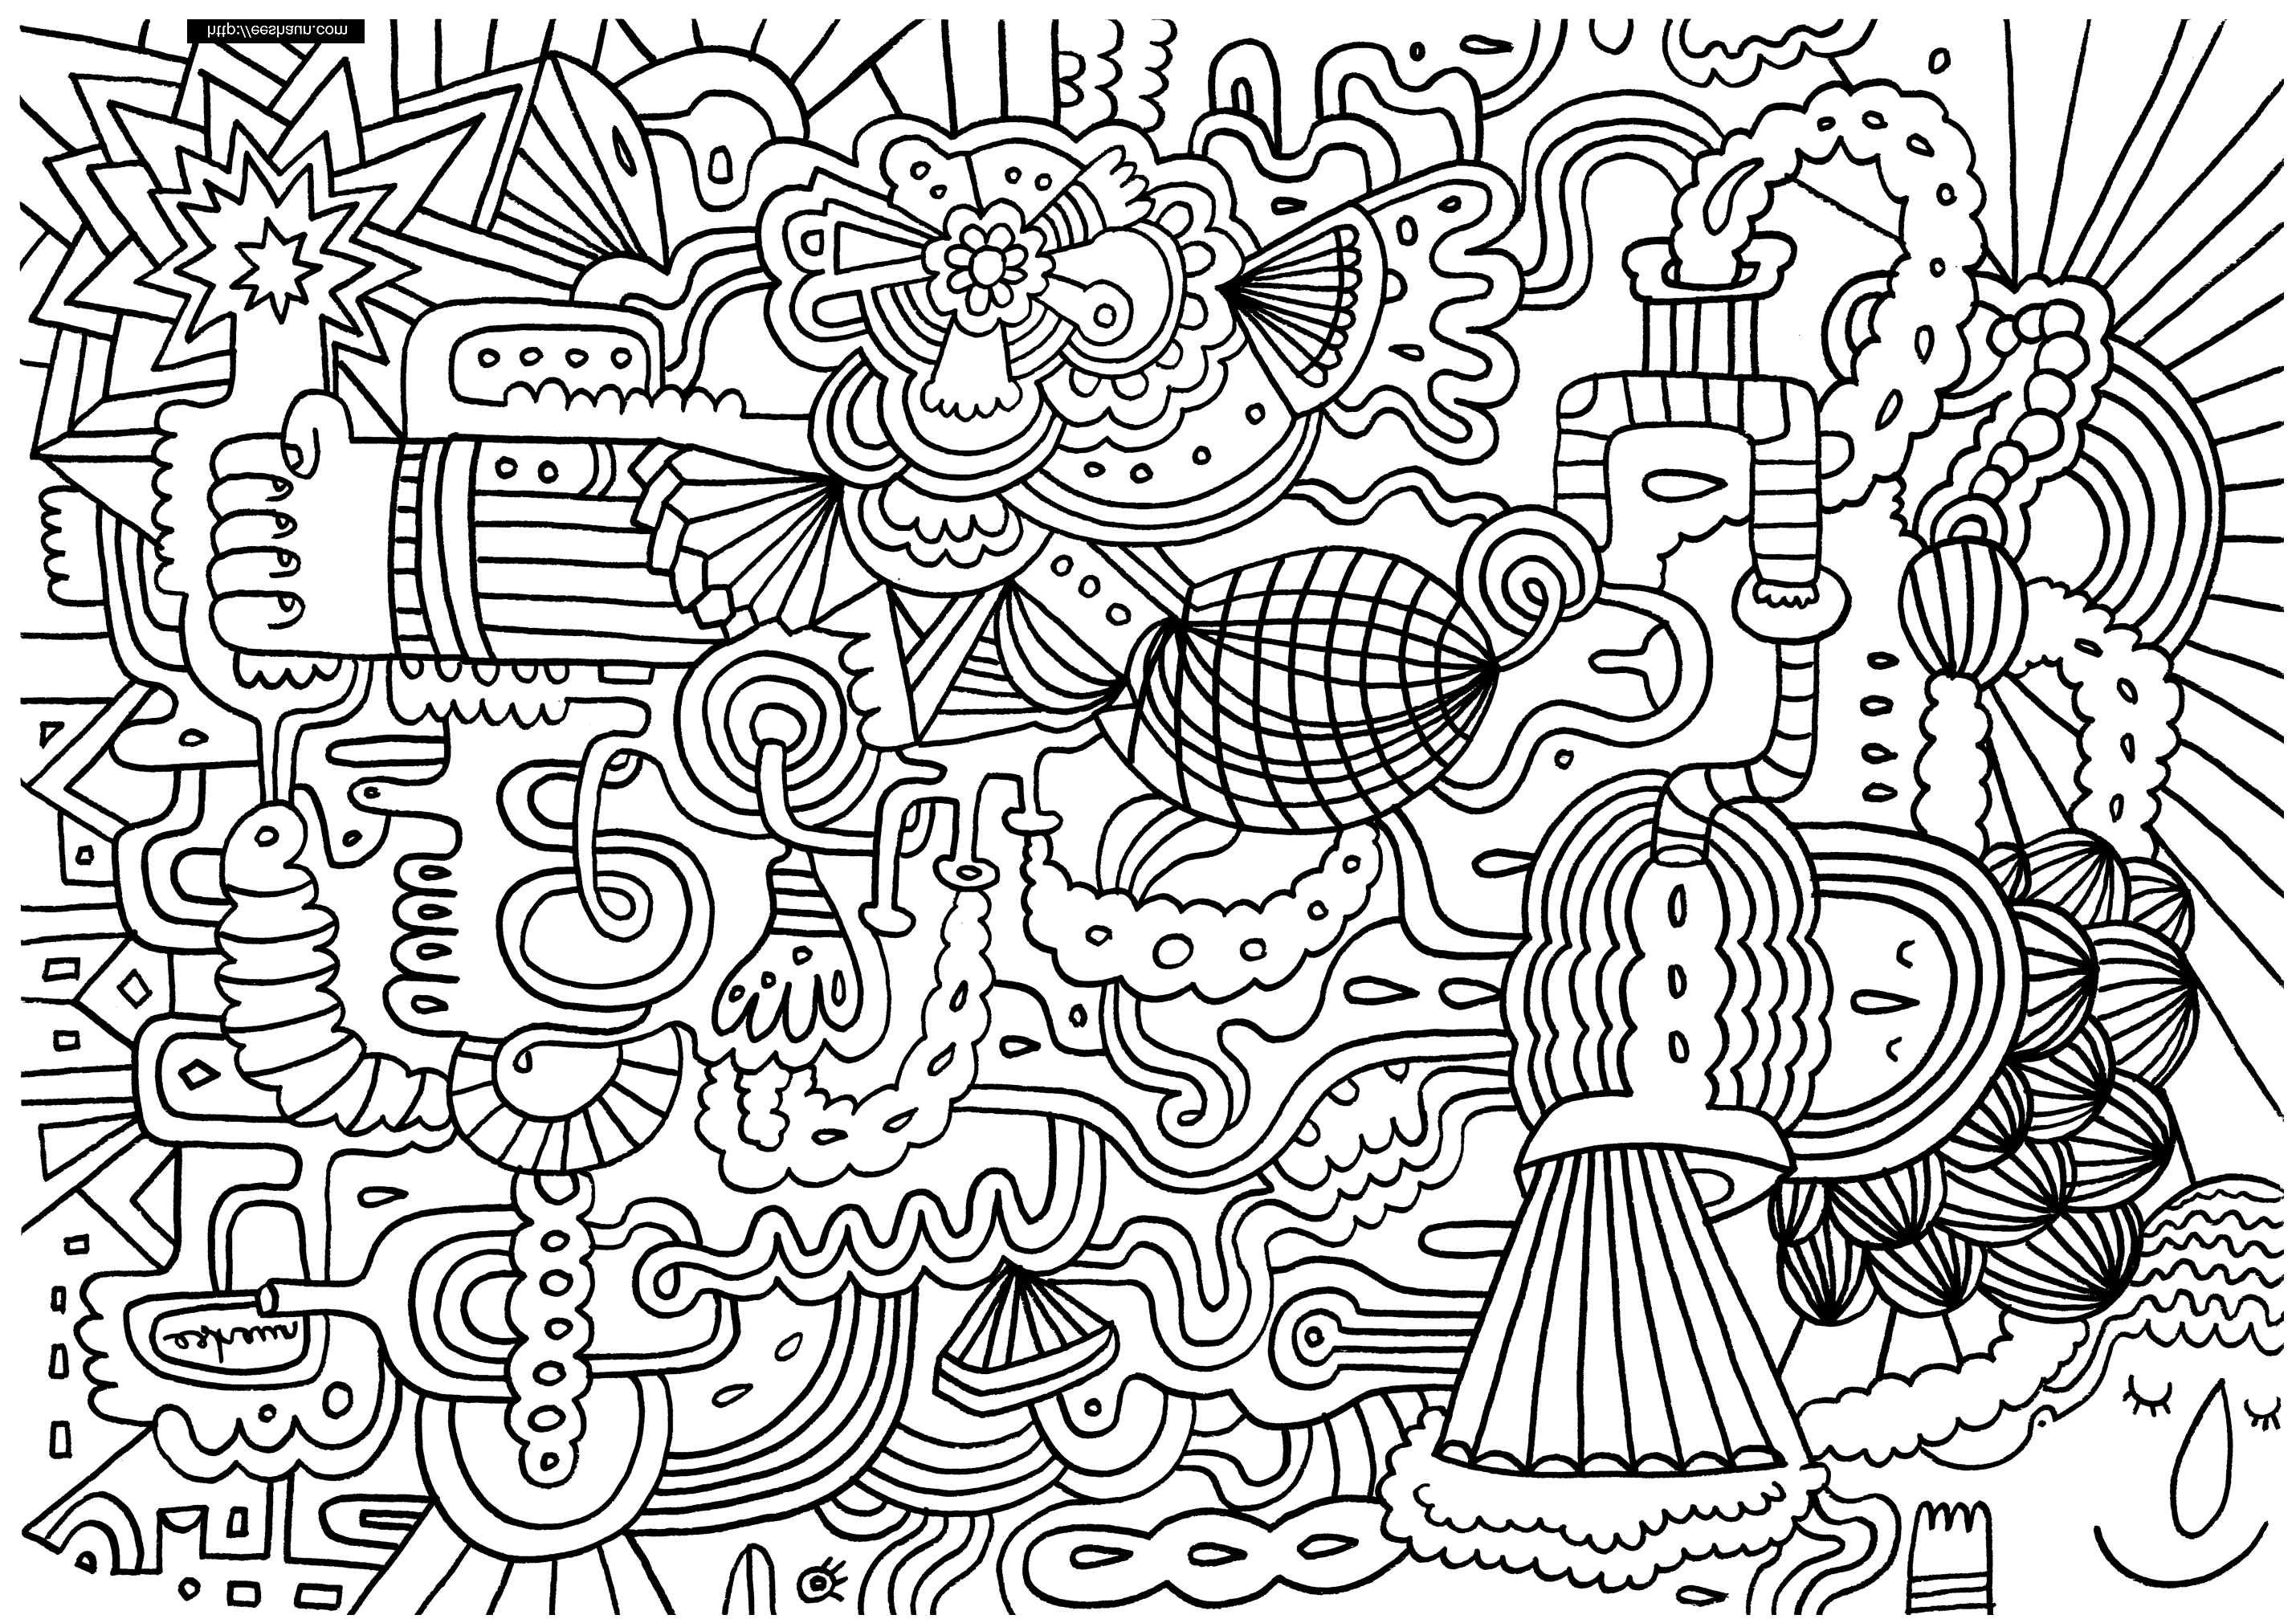 doodle art free printables free coloring pages doodle art alley free art printables doodle